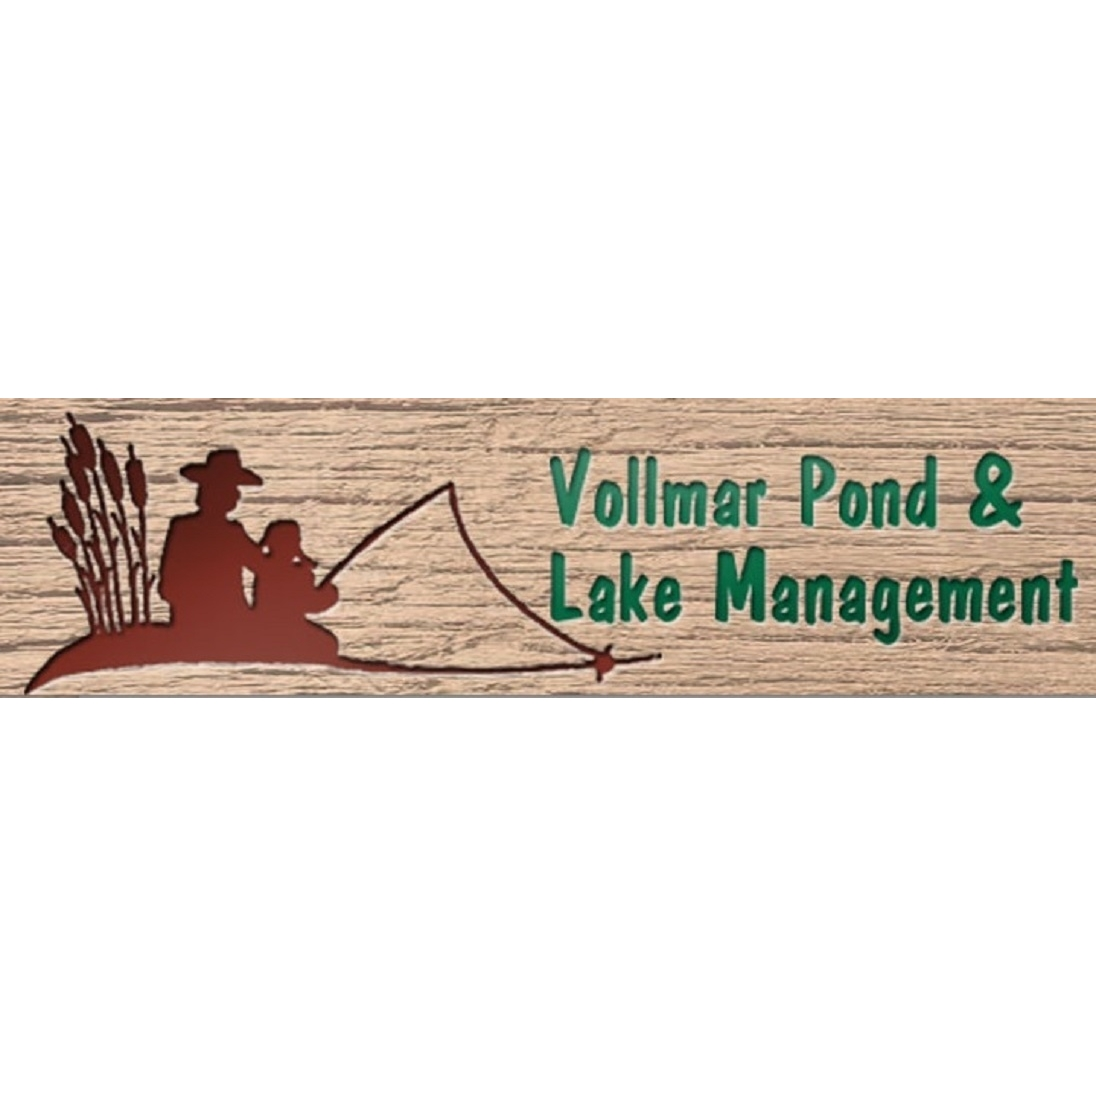 Vollmar pond lake management coupons near me in 8coupons for Pond supplies near me